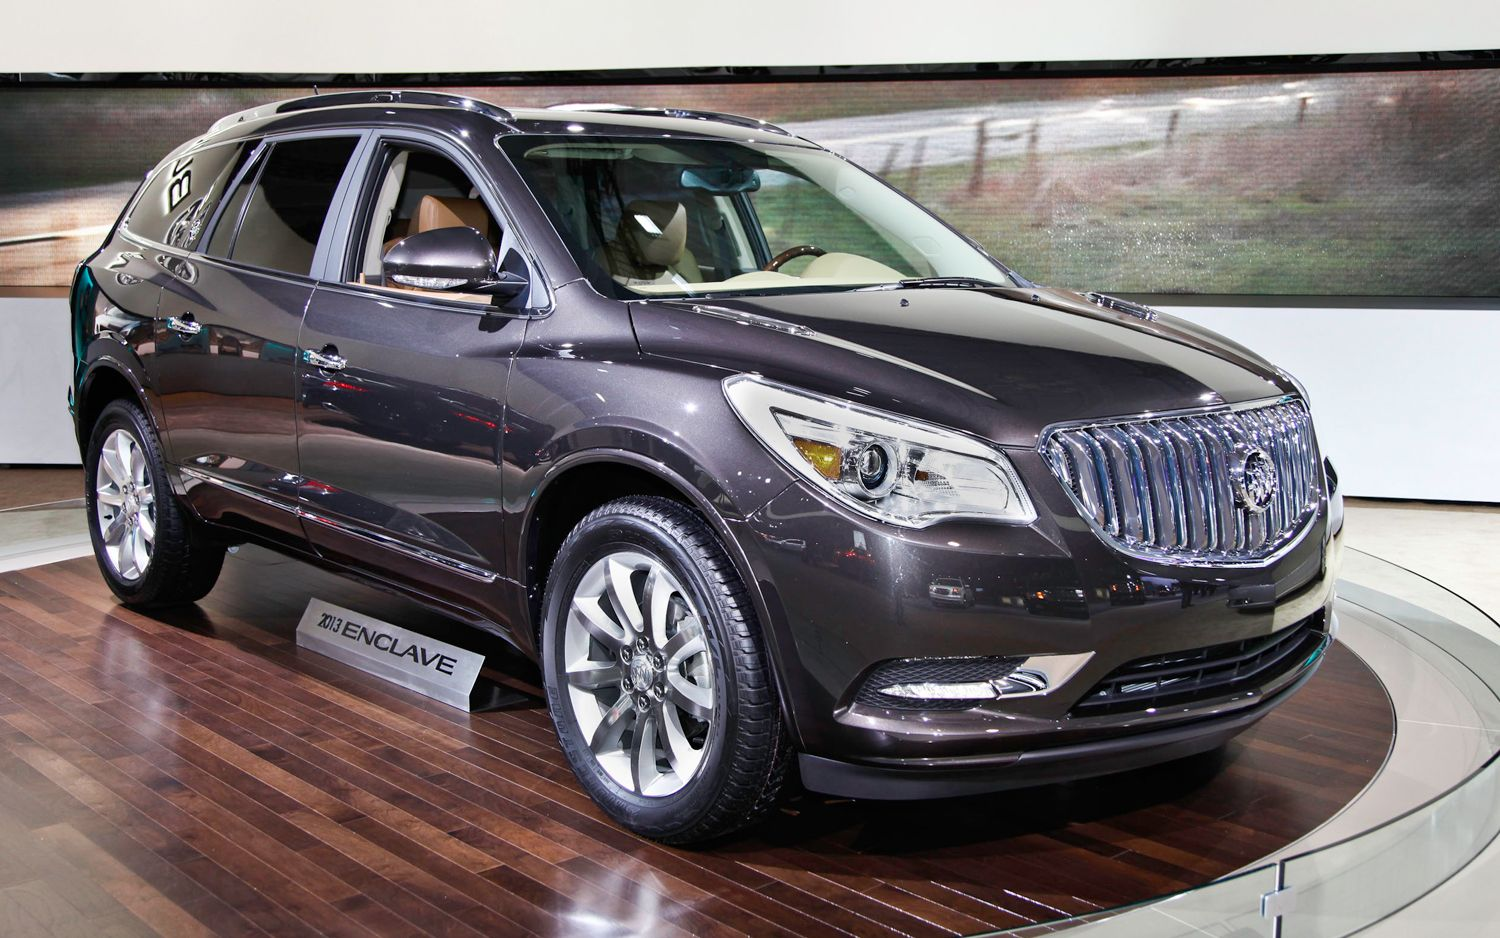 2014 Buick Enclave Redesign Suv Awd Family 3 6vvt Van Minivan Buick Enclave Buick New Cars